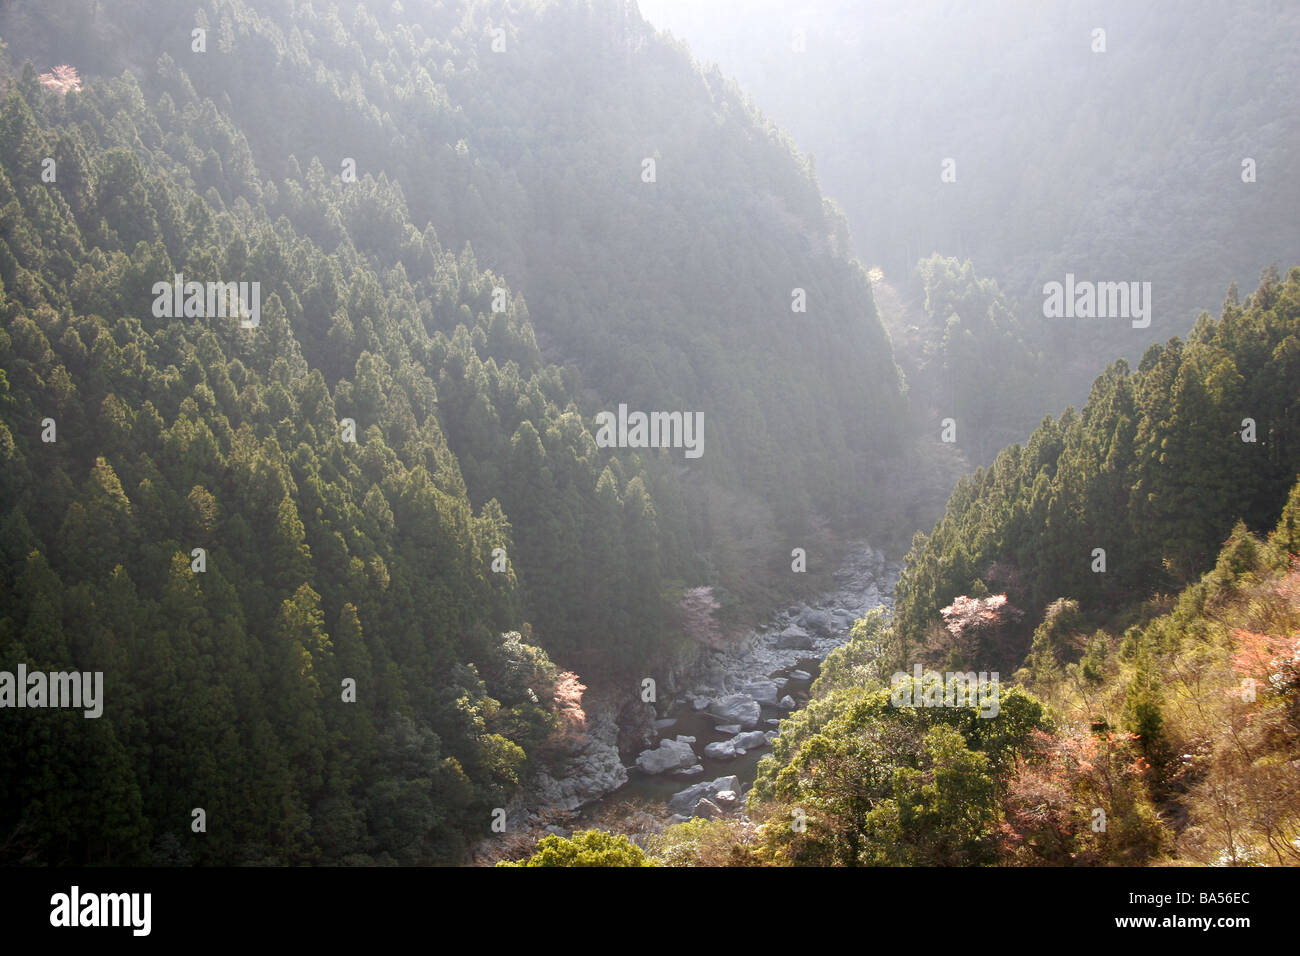 Iya Vally Japan - Stock Image